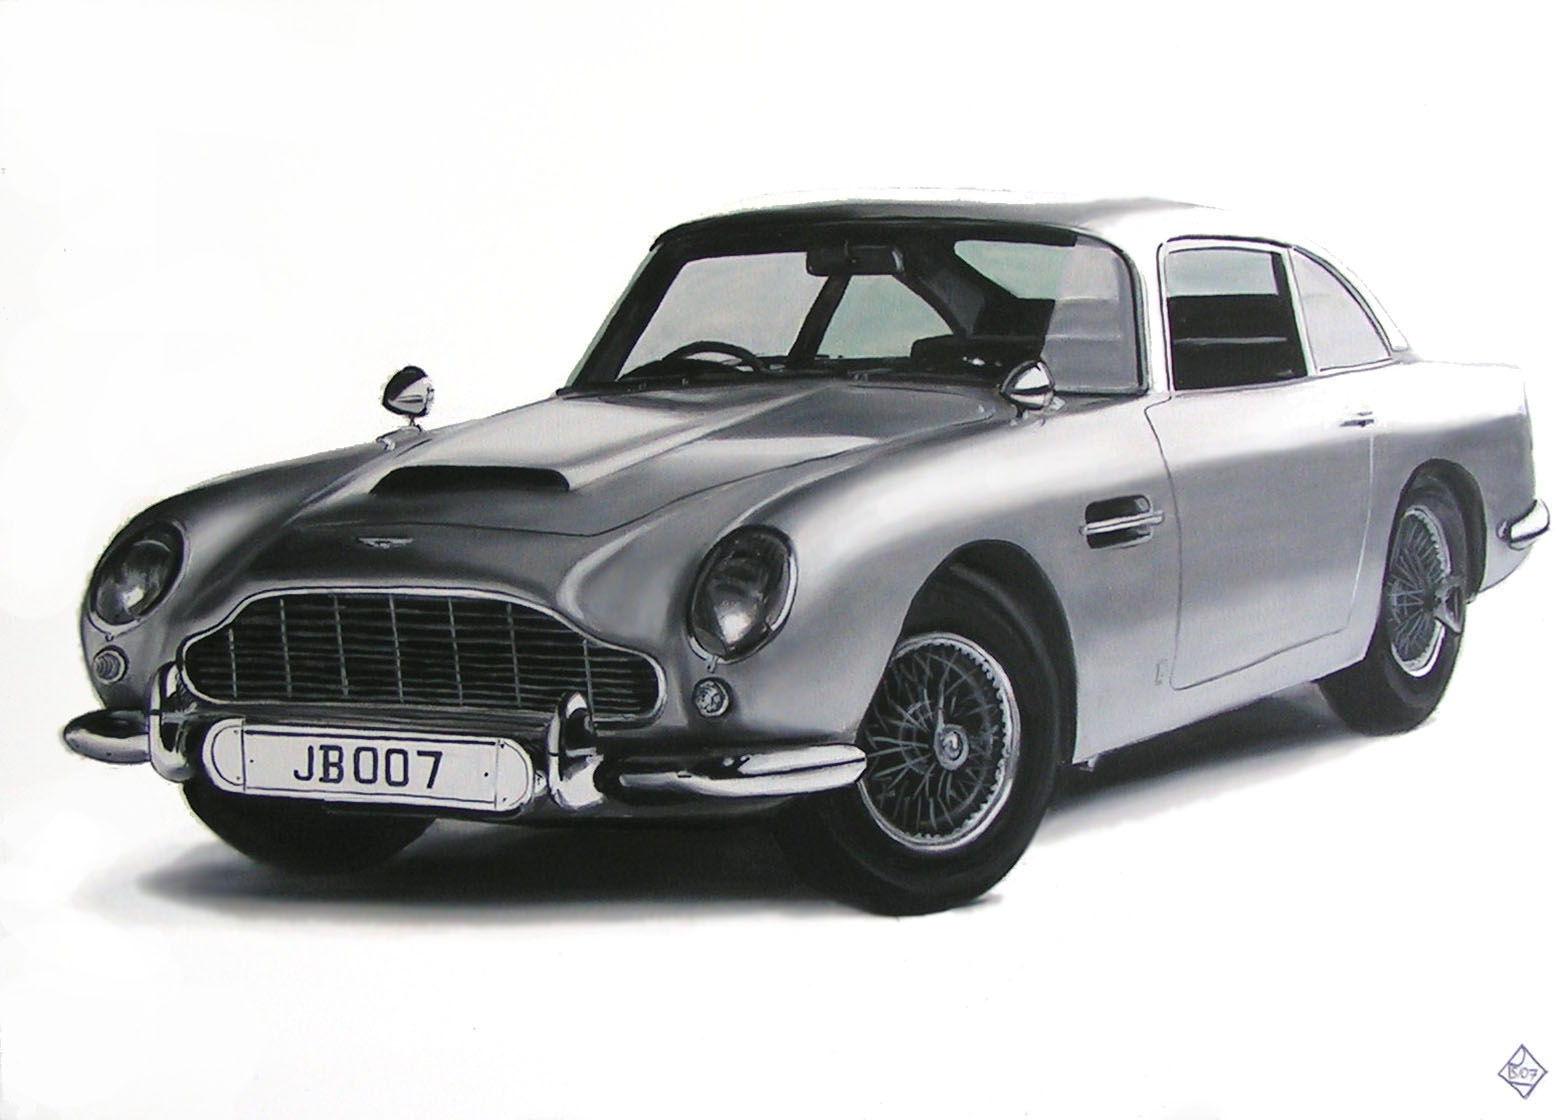 aston martin db5 related images start 150 weili automotive network. Black Bedroom Furniture Sets. Home Design Ideas